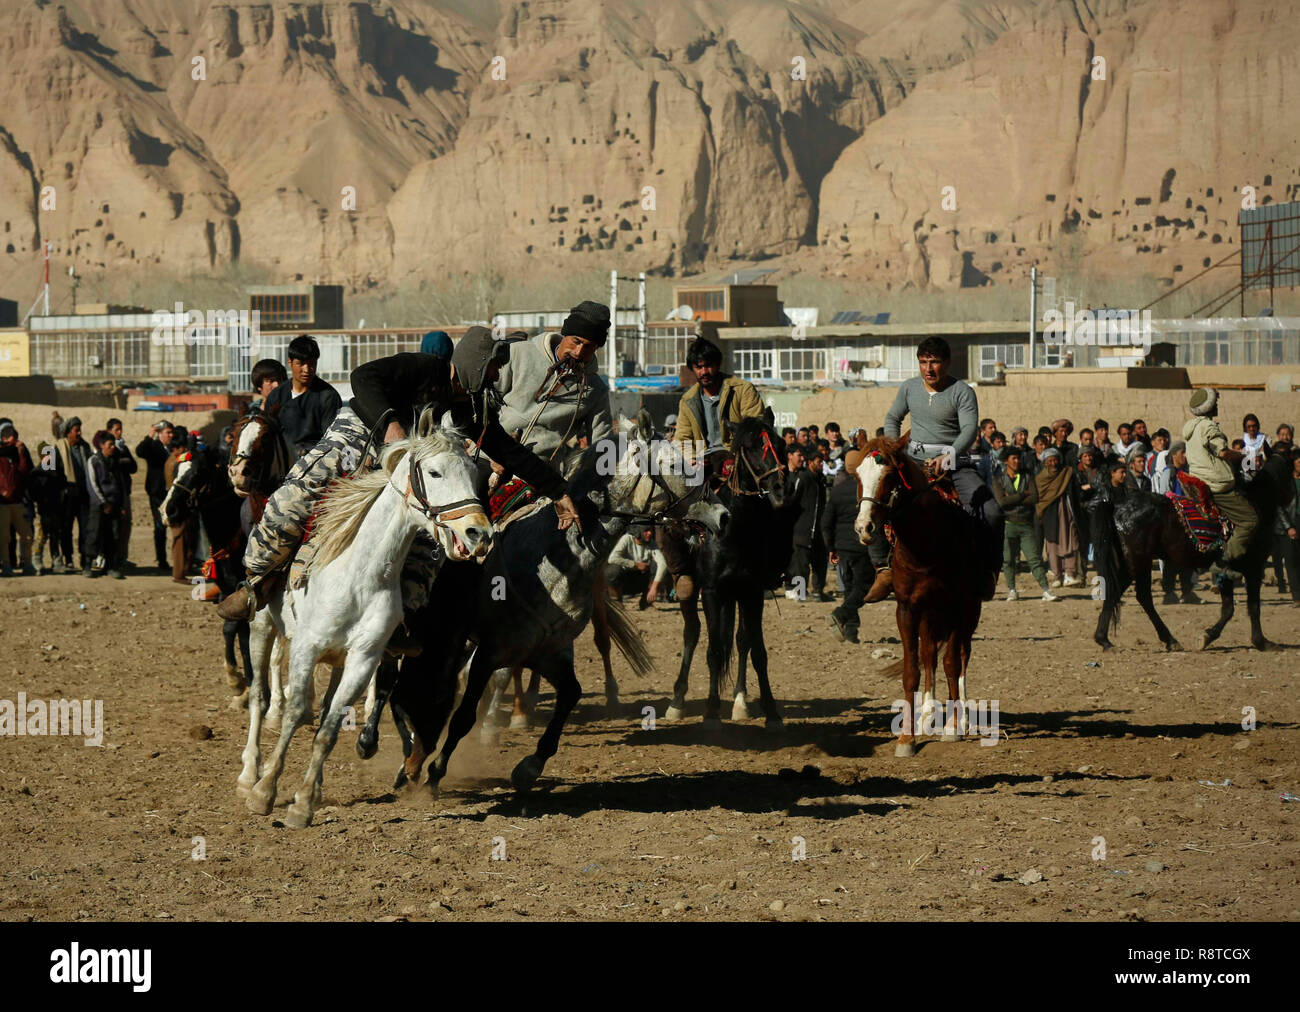 Bamyan, Afghanistan  16th Dec, 2018  Afghan horsemen compete for the